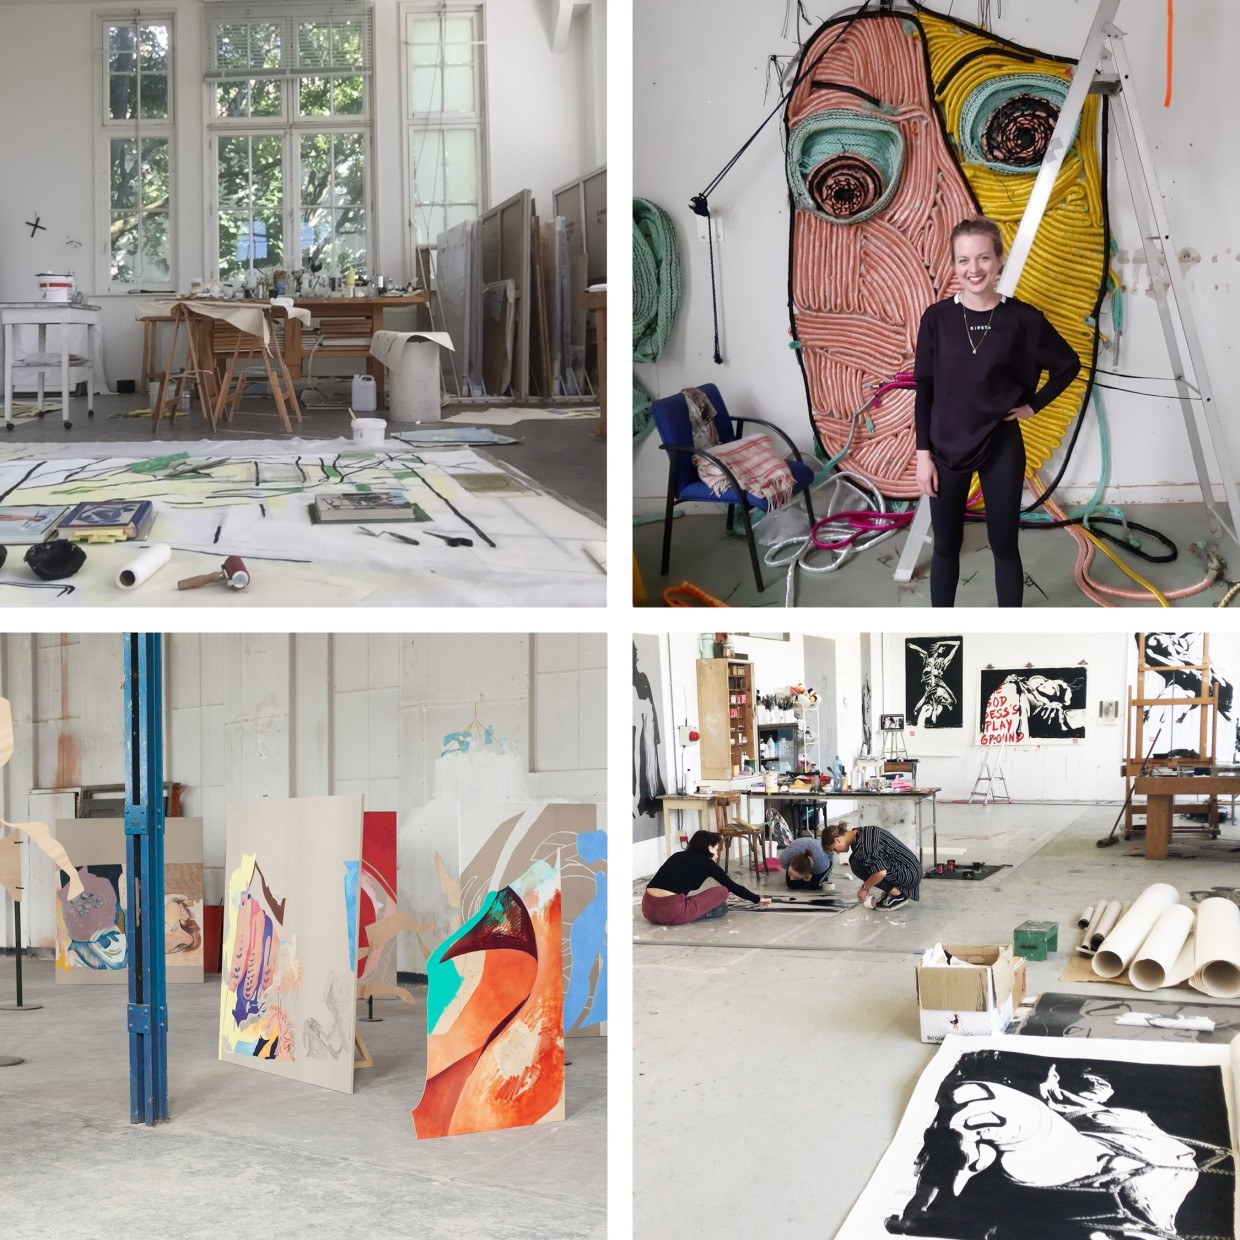 Click here for the studio visits